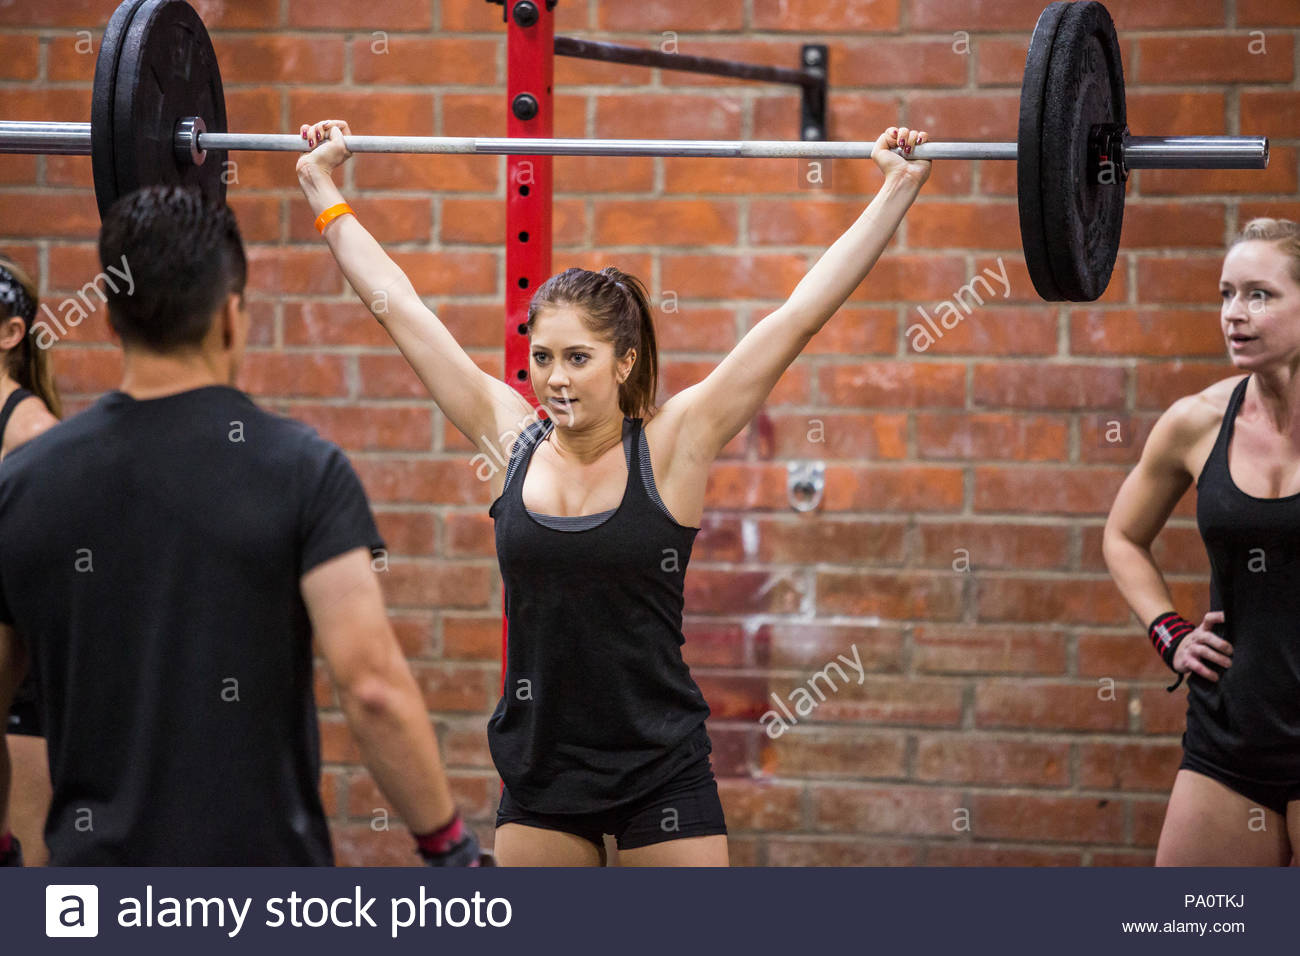 Female CrossFit athlete with barbell overhead - Stock Image